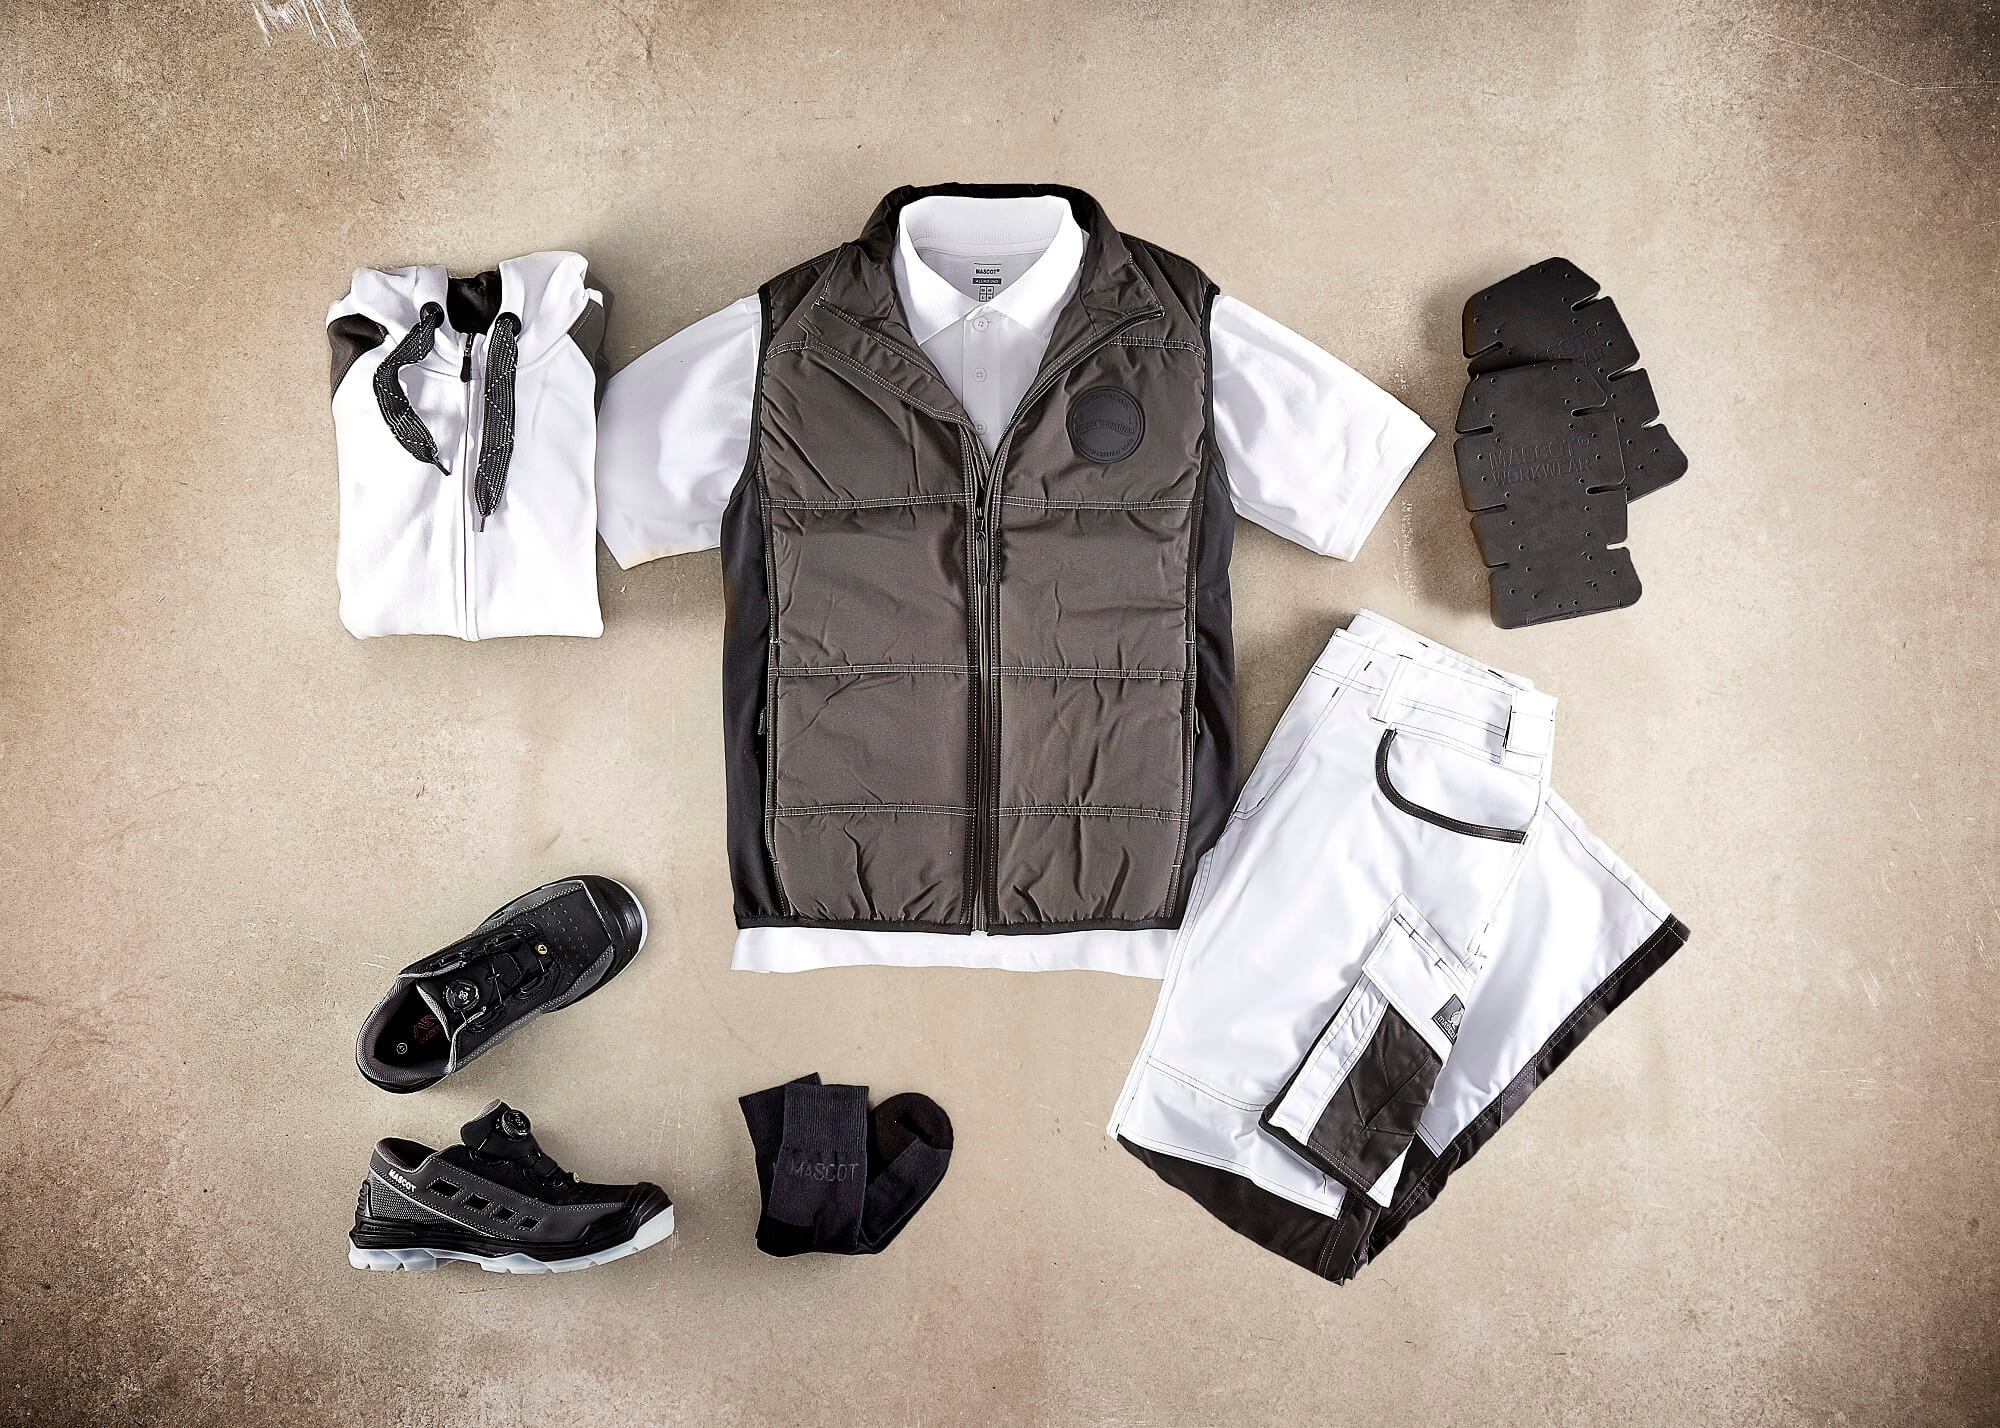 Thermal Gilet, Hoodie with zipper, Polo shirt, Pants & Safety Sandal - White - Collage